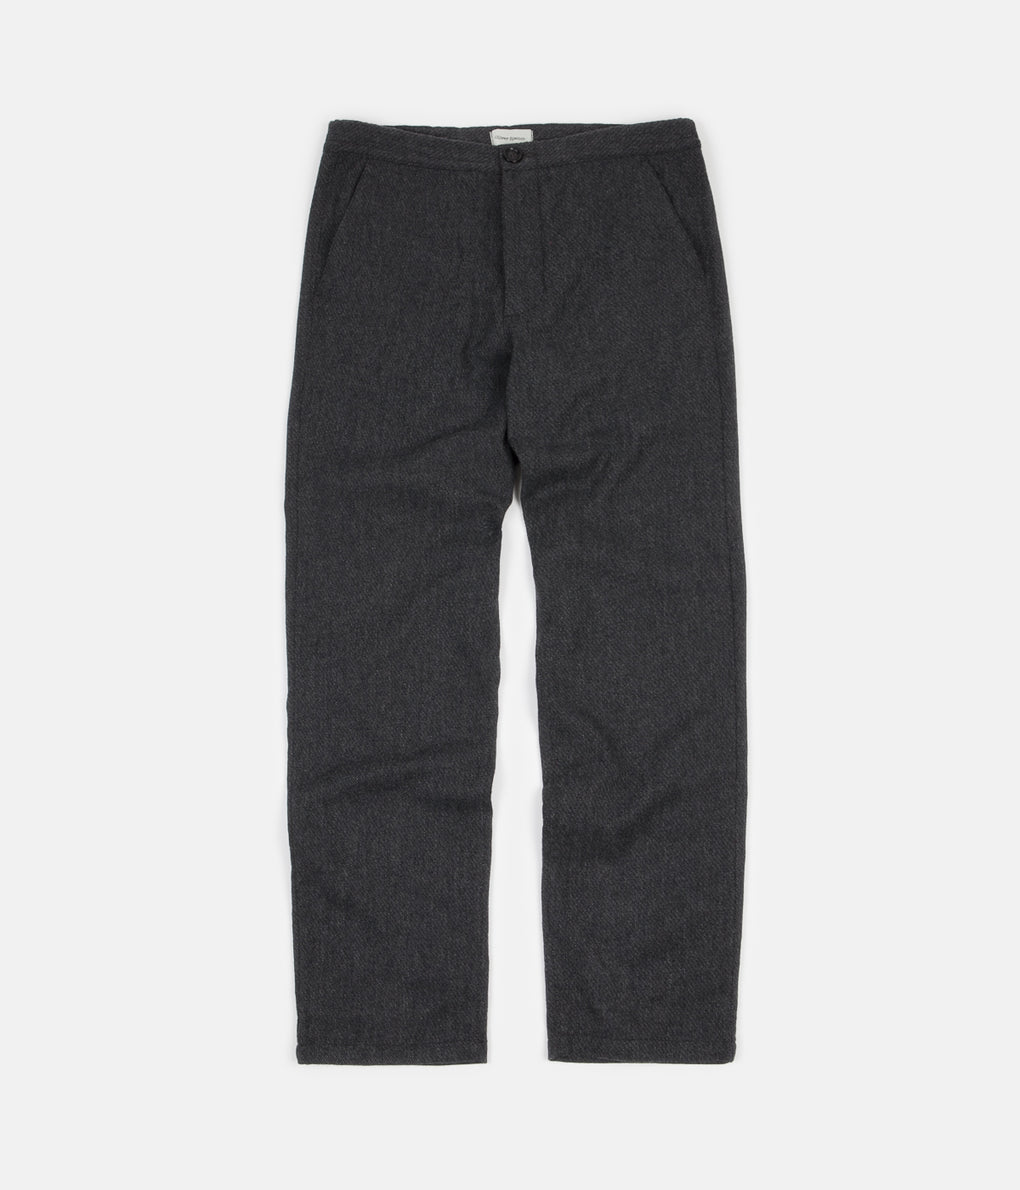 Oliver Spencer Drawstring Trousers - Caldwell Grey